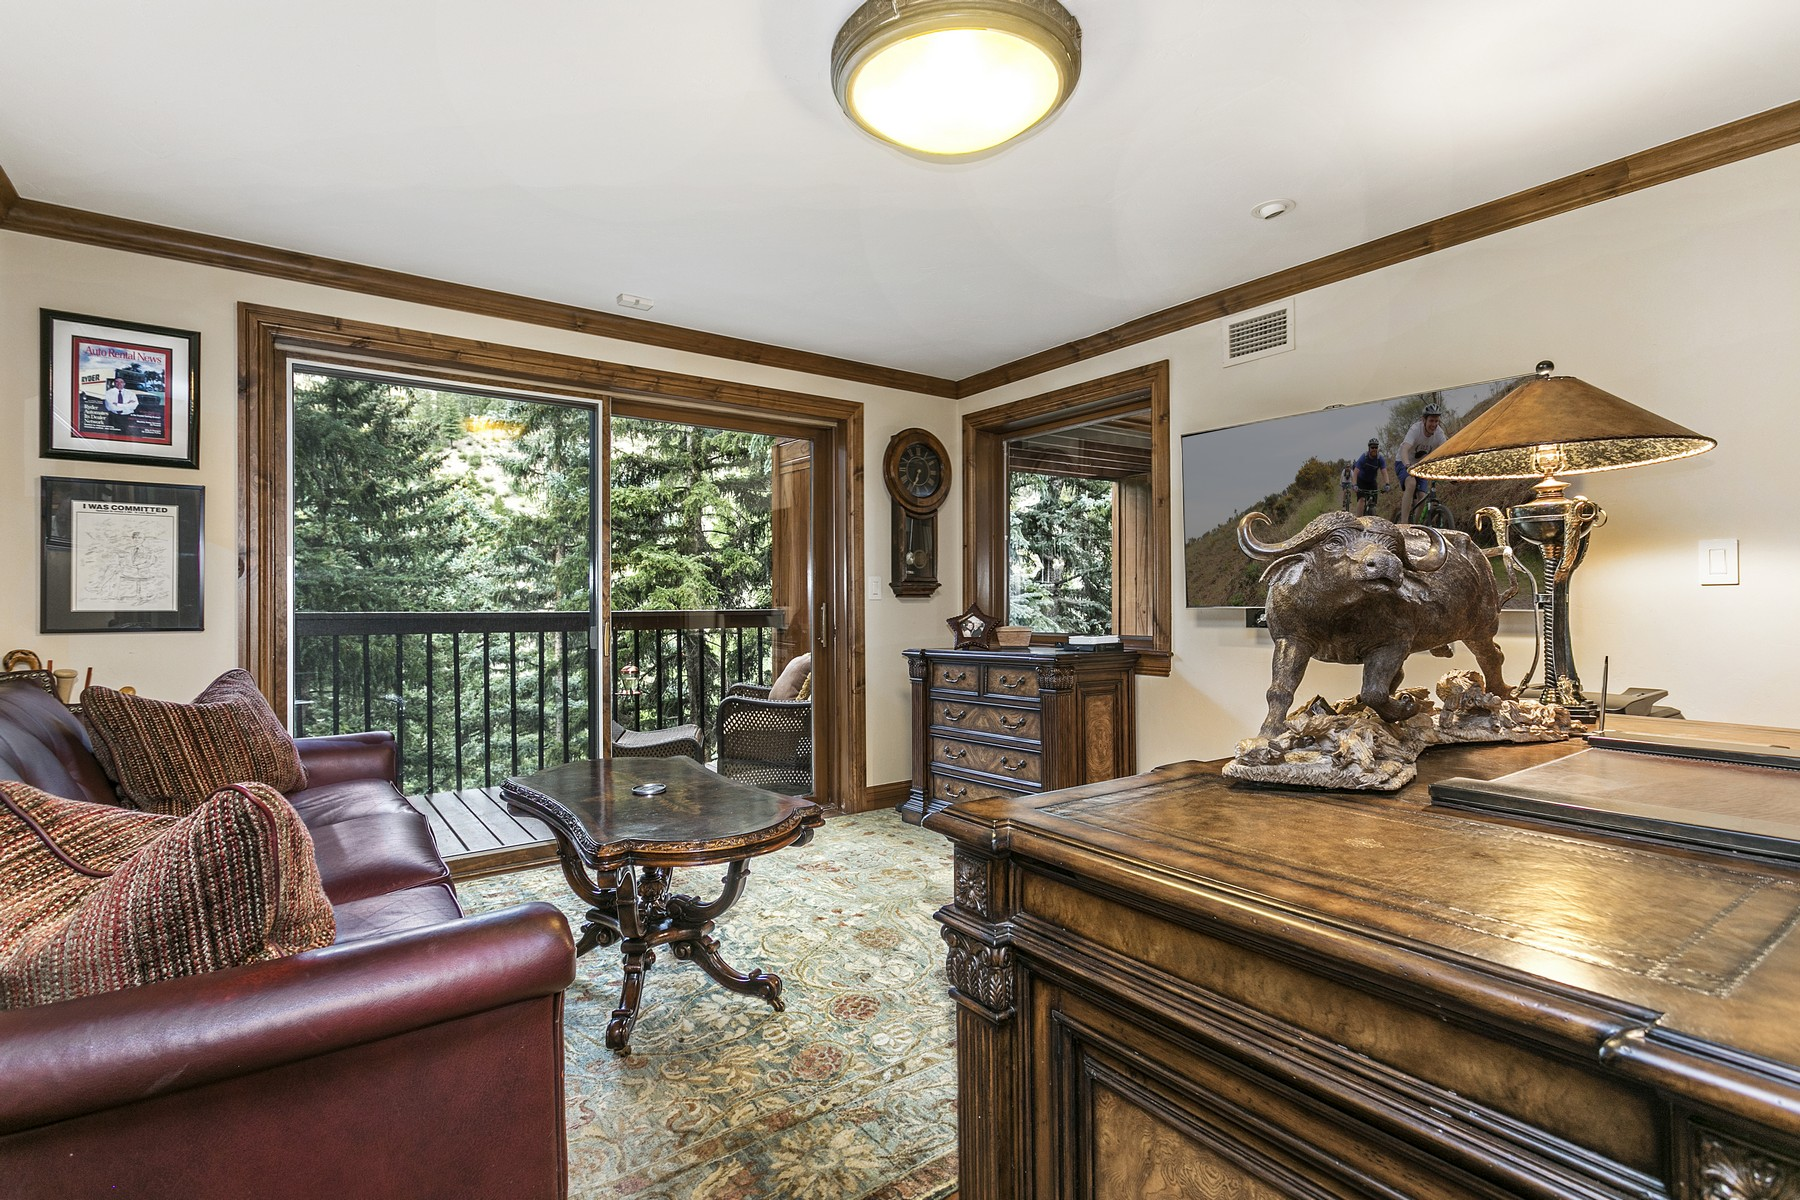 Additional photo for property listing at Discover the magic of this private location within Beaver Creek Resort 173 South Fairway Drive Beaver Creek, Colorado 81620 United States